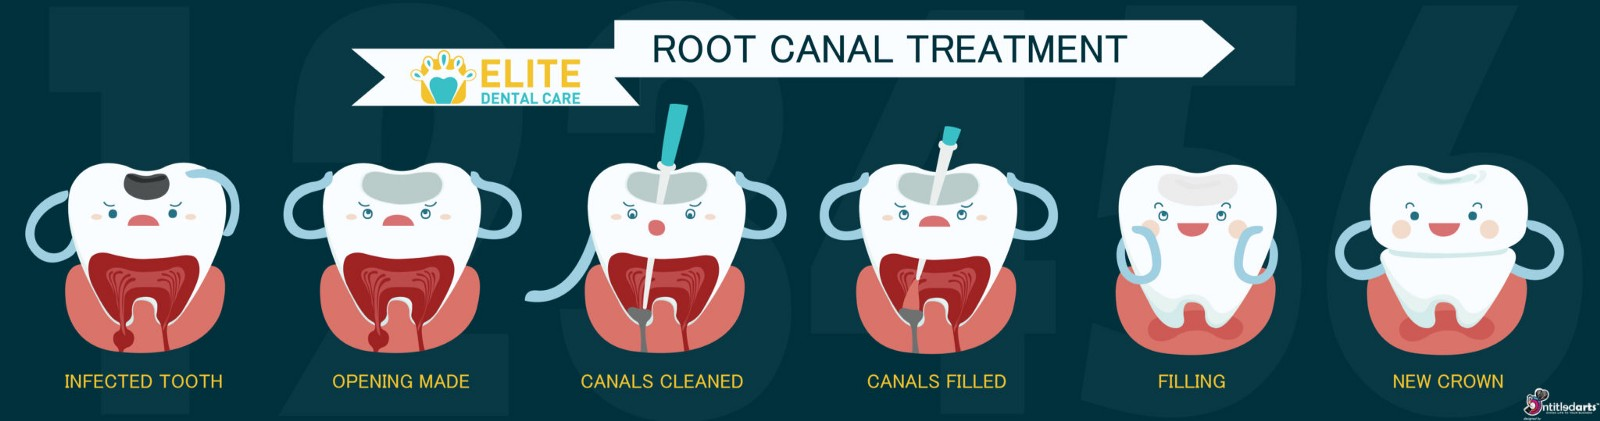 are you about to have your first root canal treatment